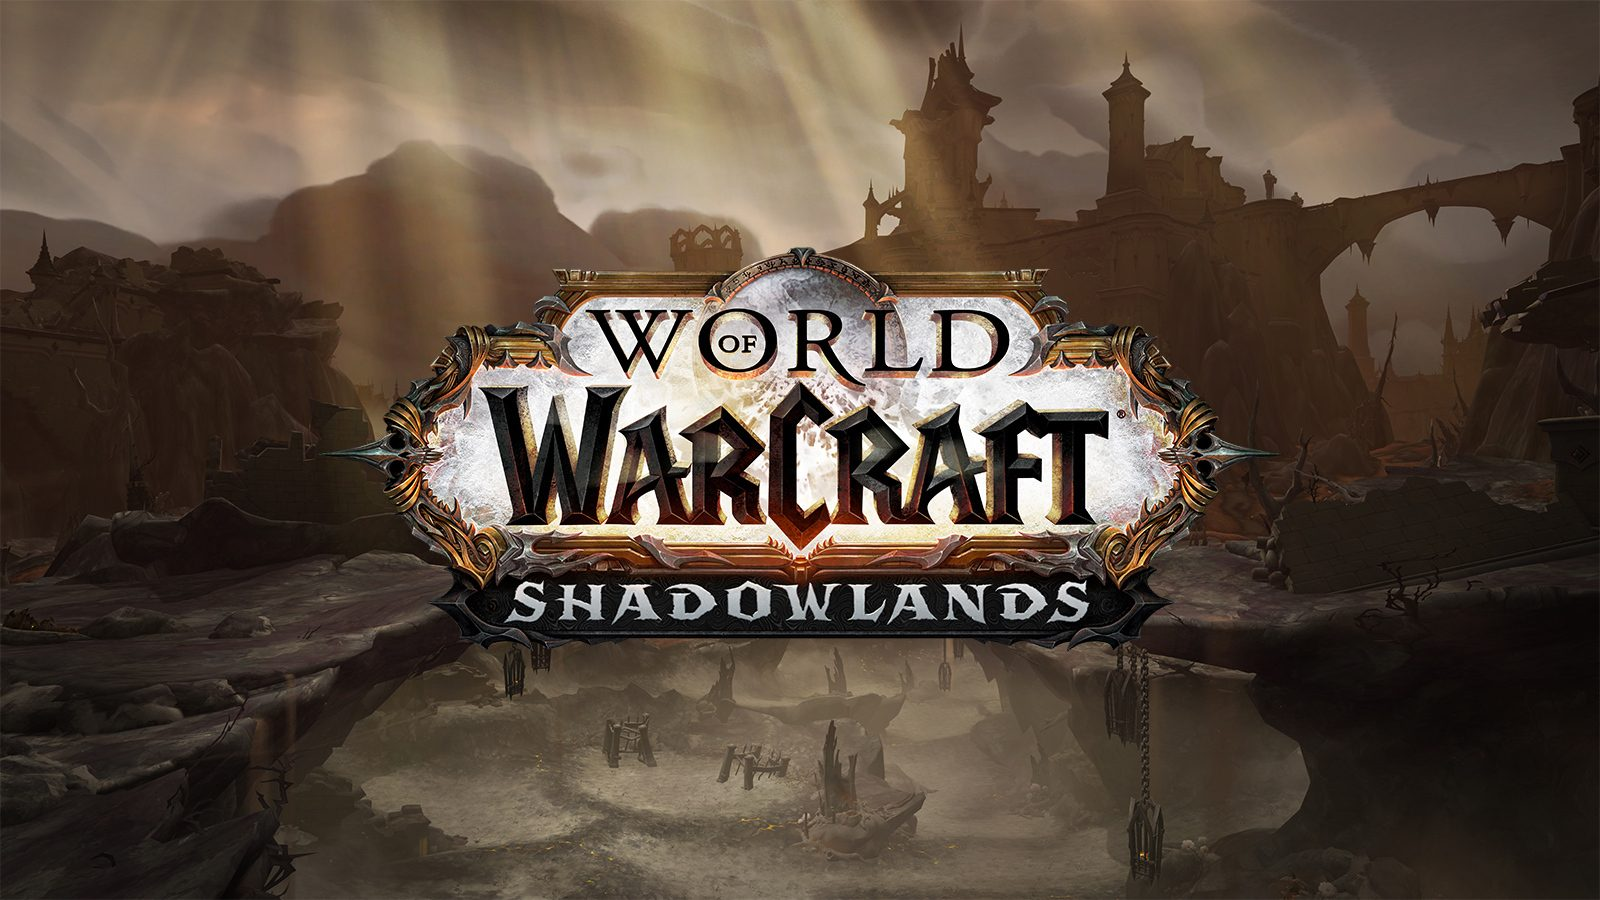 World of Warcraft Shadowlands